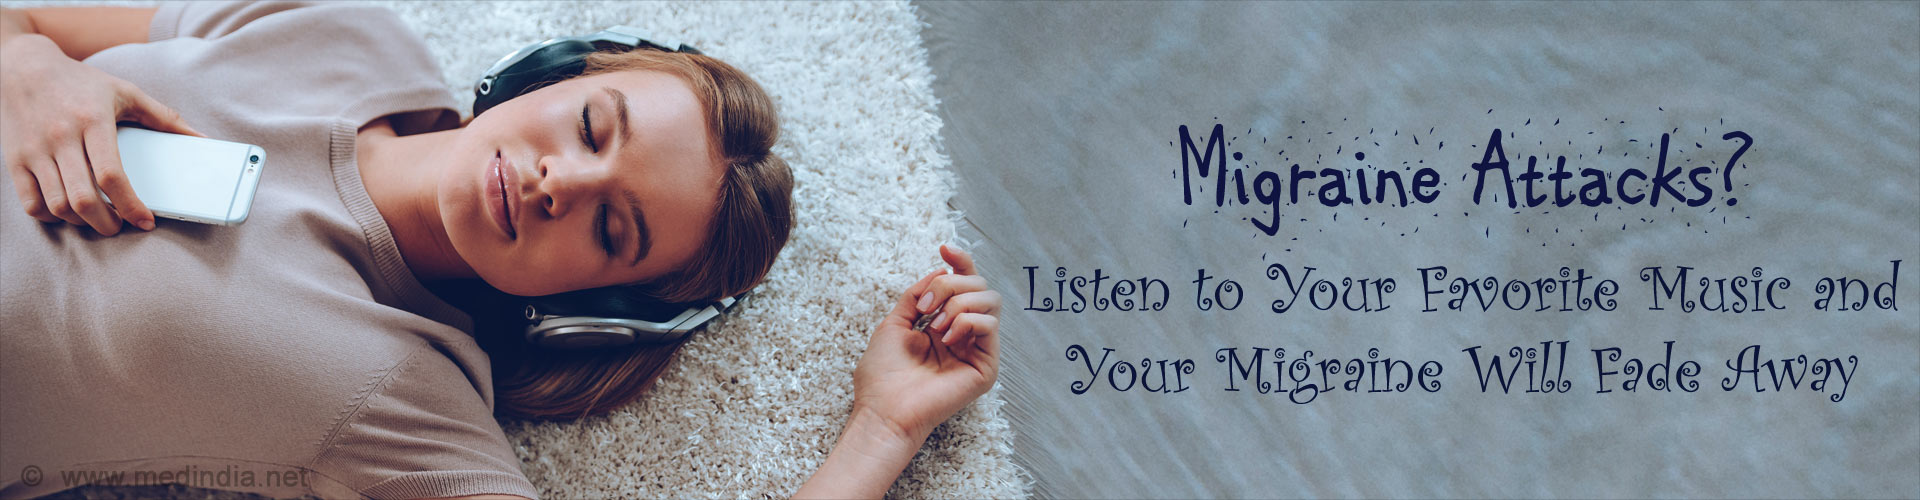 Migraine Attacks? Listen to Your Favorite Music and Your Migraine Will Fade Away